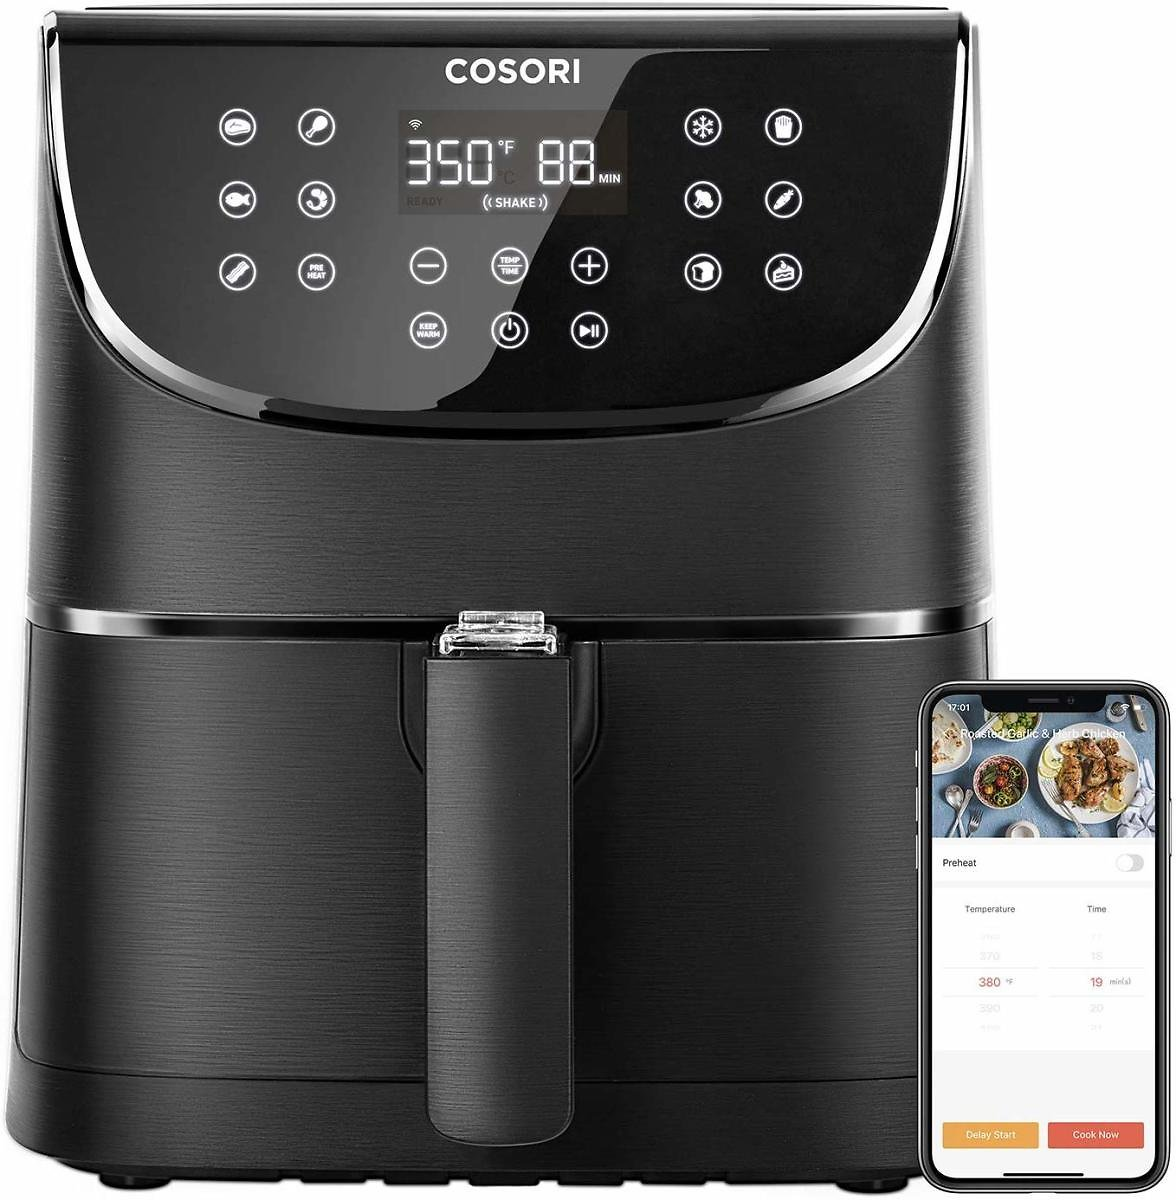 Avail 13% Discount - COSORI Smart WiFi Air Fryer 5.8QT 1700-Watt